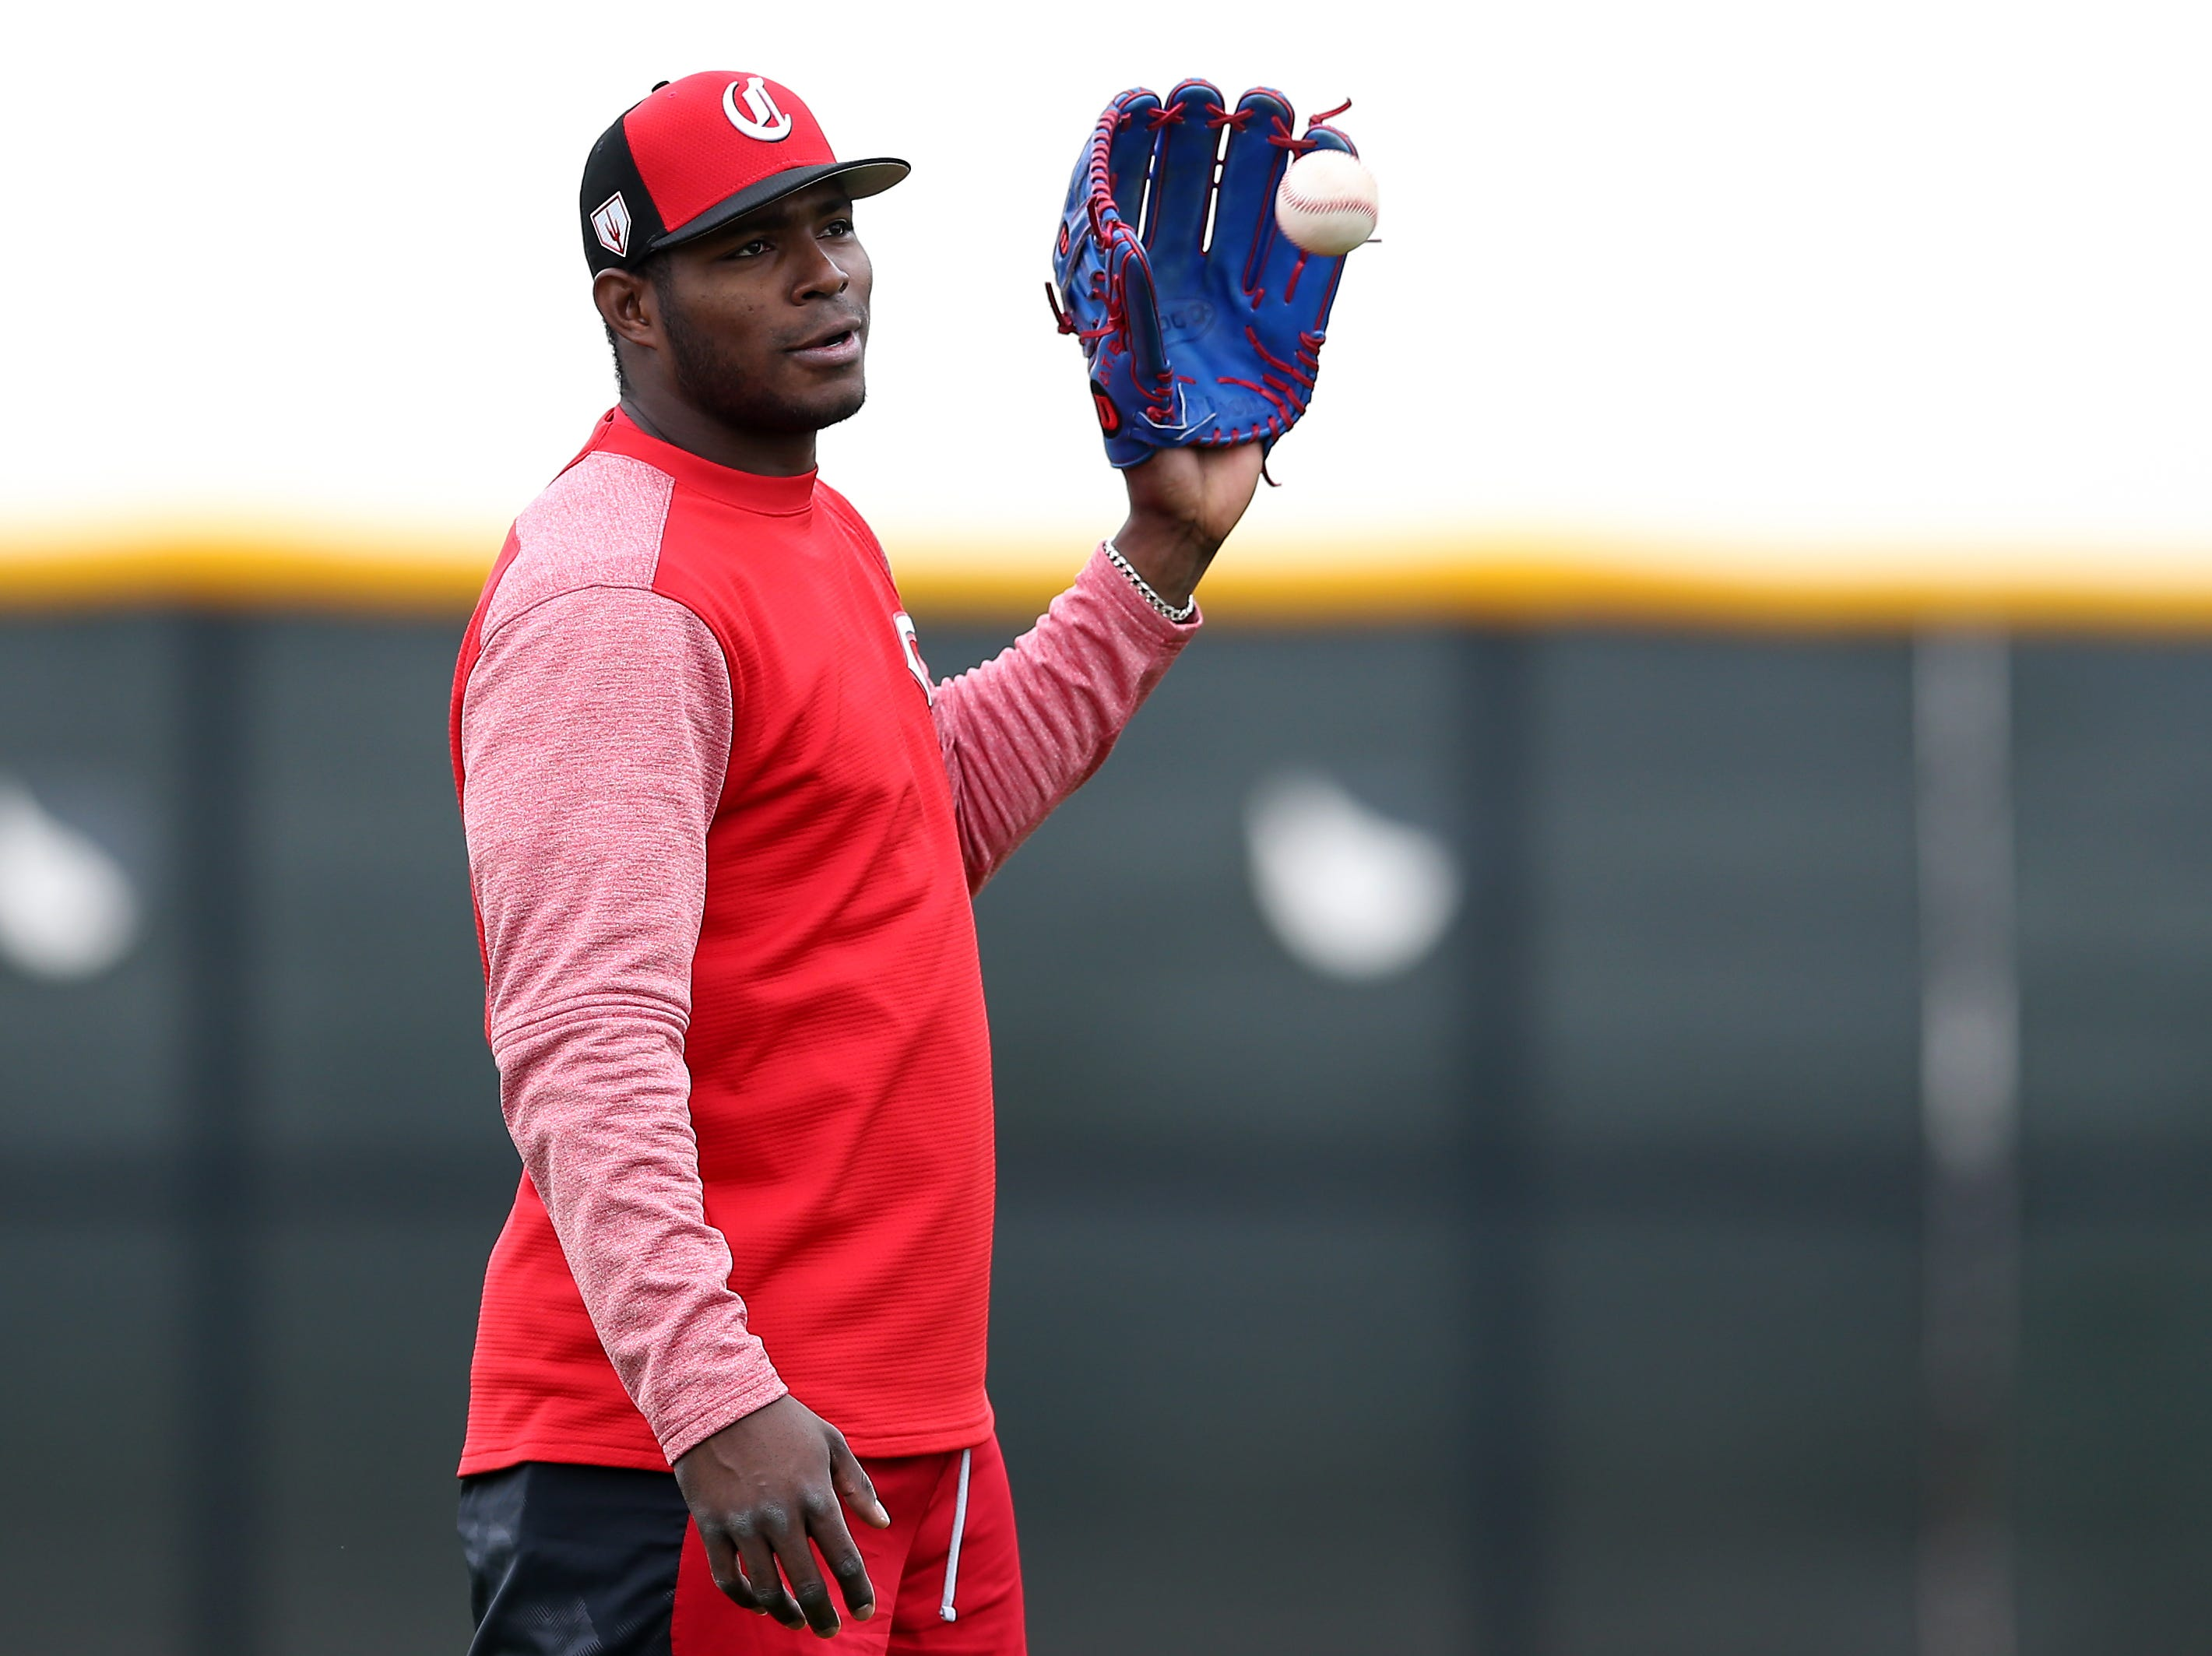 Cincinnati Reds outfielder Yasiel Puig (66) catches a ball during drills, Wednesday, Feb. 13, 2019, at the Cincinnati Reds spring training facility in Goodyear, Arizona.